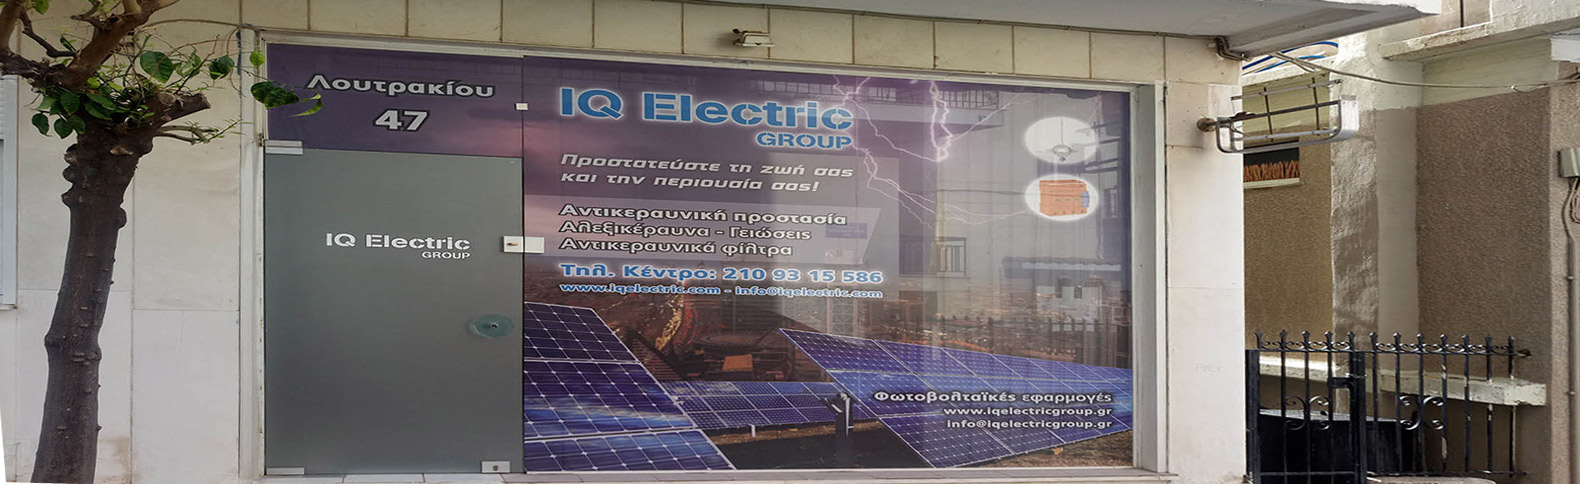 iqelectric